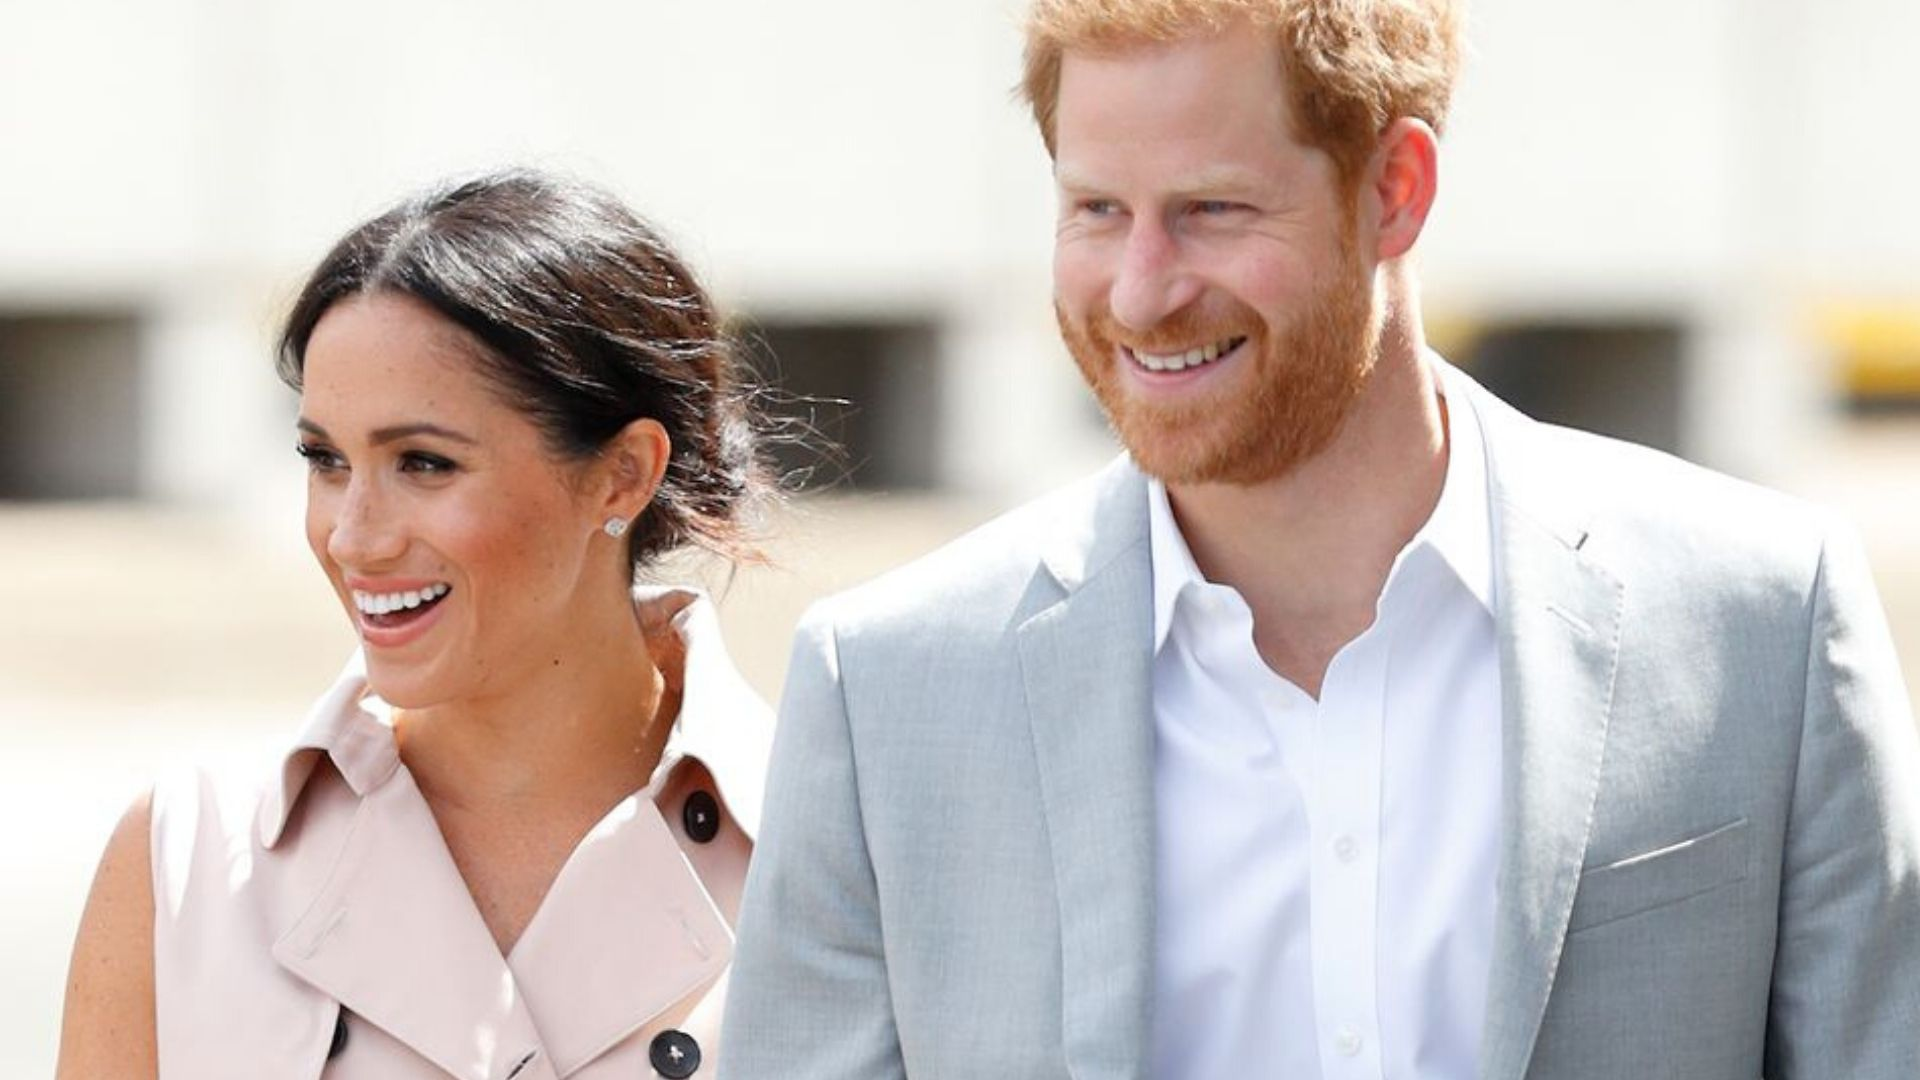 Harry and Meghan Markle react to the Queen's speech about coronavirus